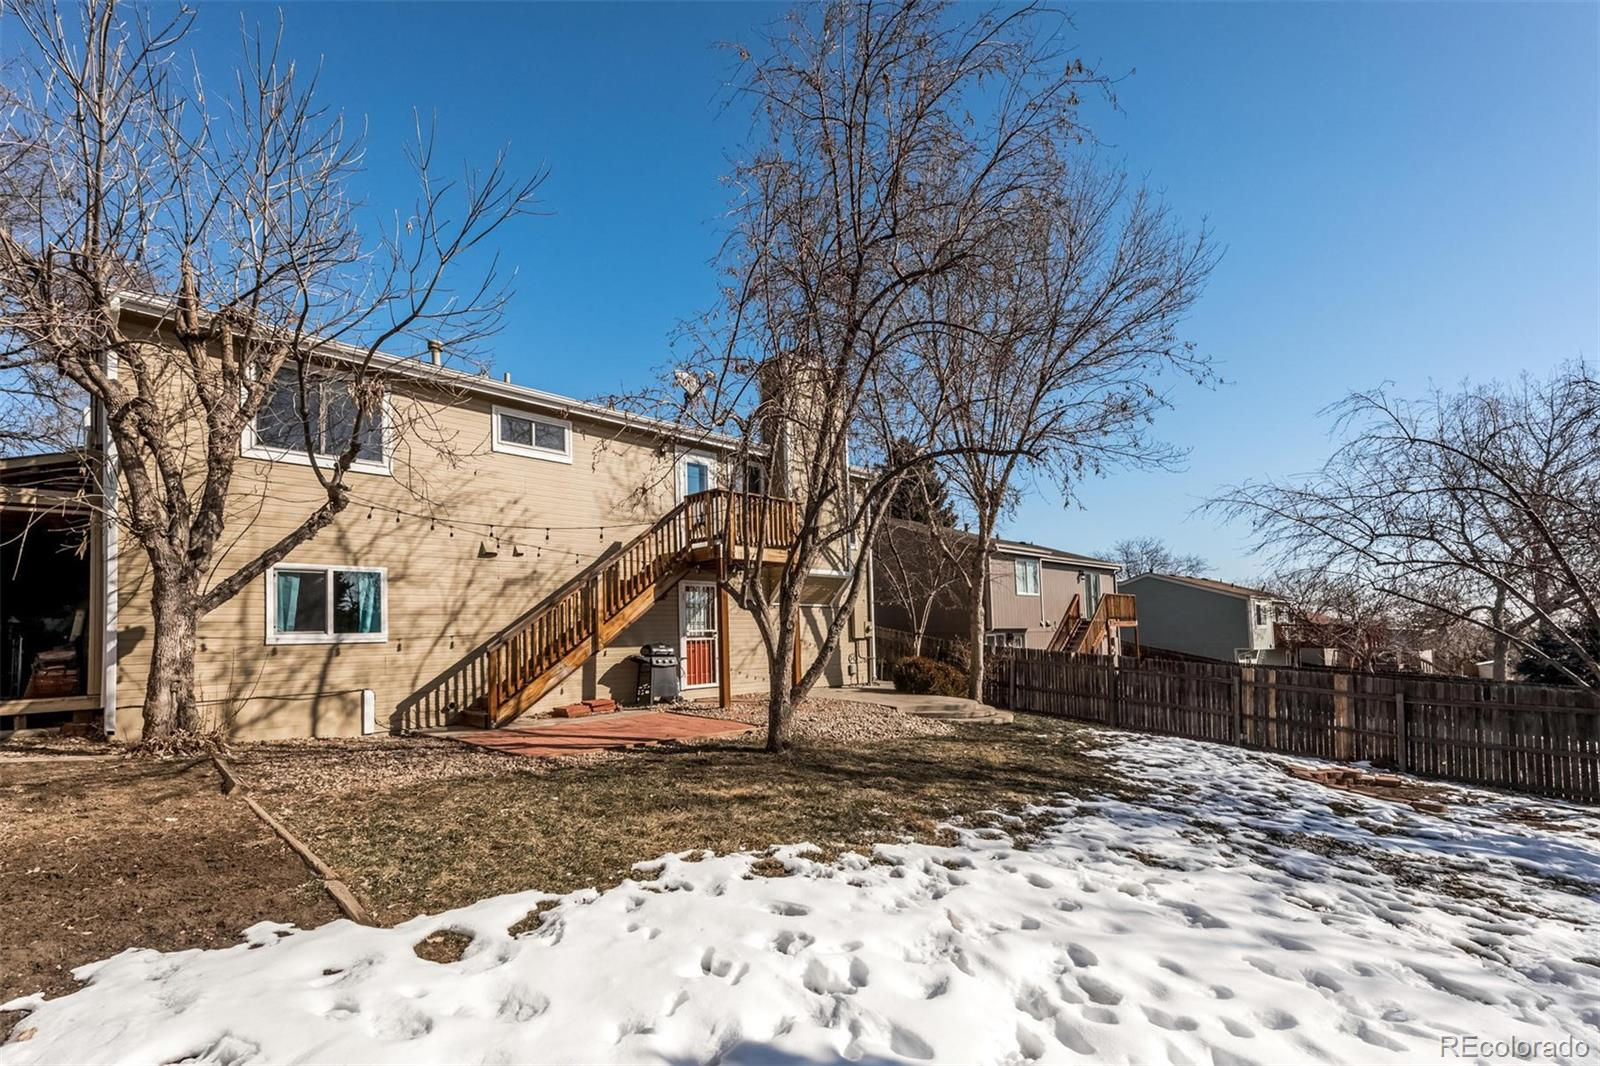 MLS# 5599126 - 26 - 5806 W 74th Place, Arvada, CO 80003